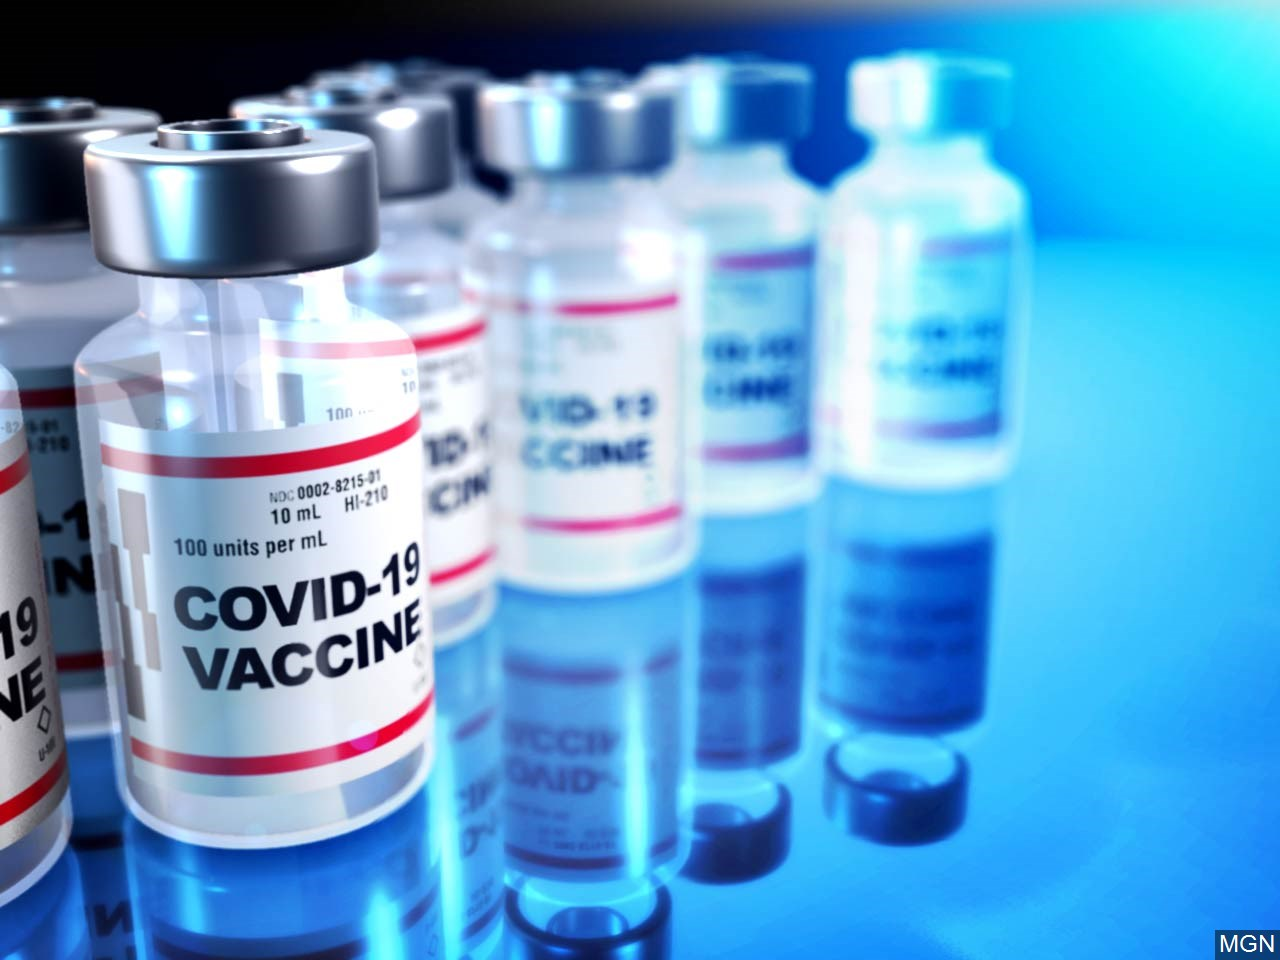 WA officials 'confused, frustrated' after feds reveal vaccine stockpile has been exhausted